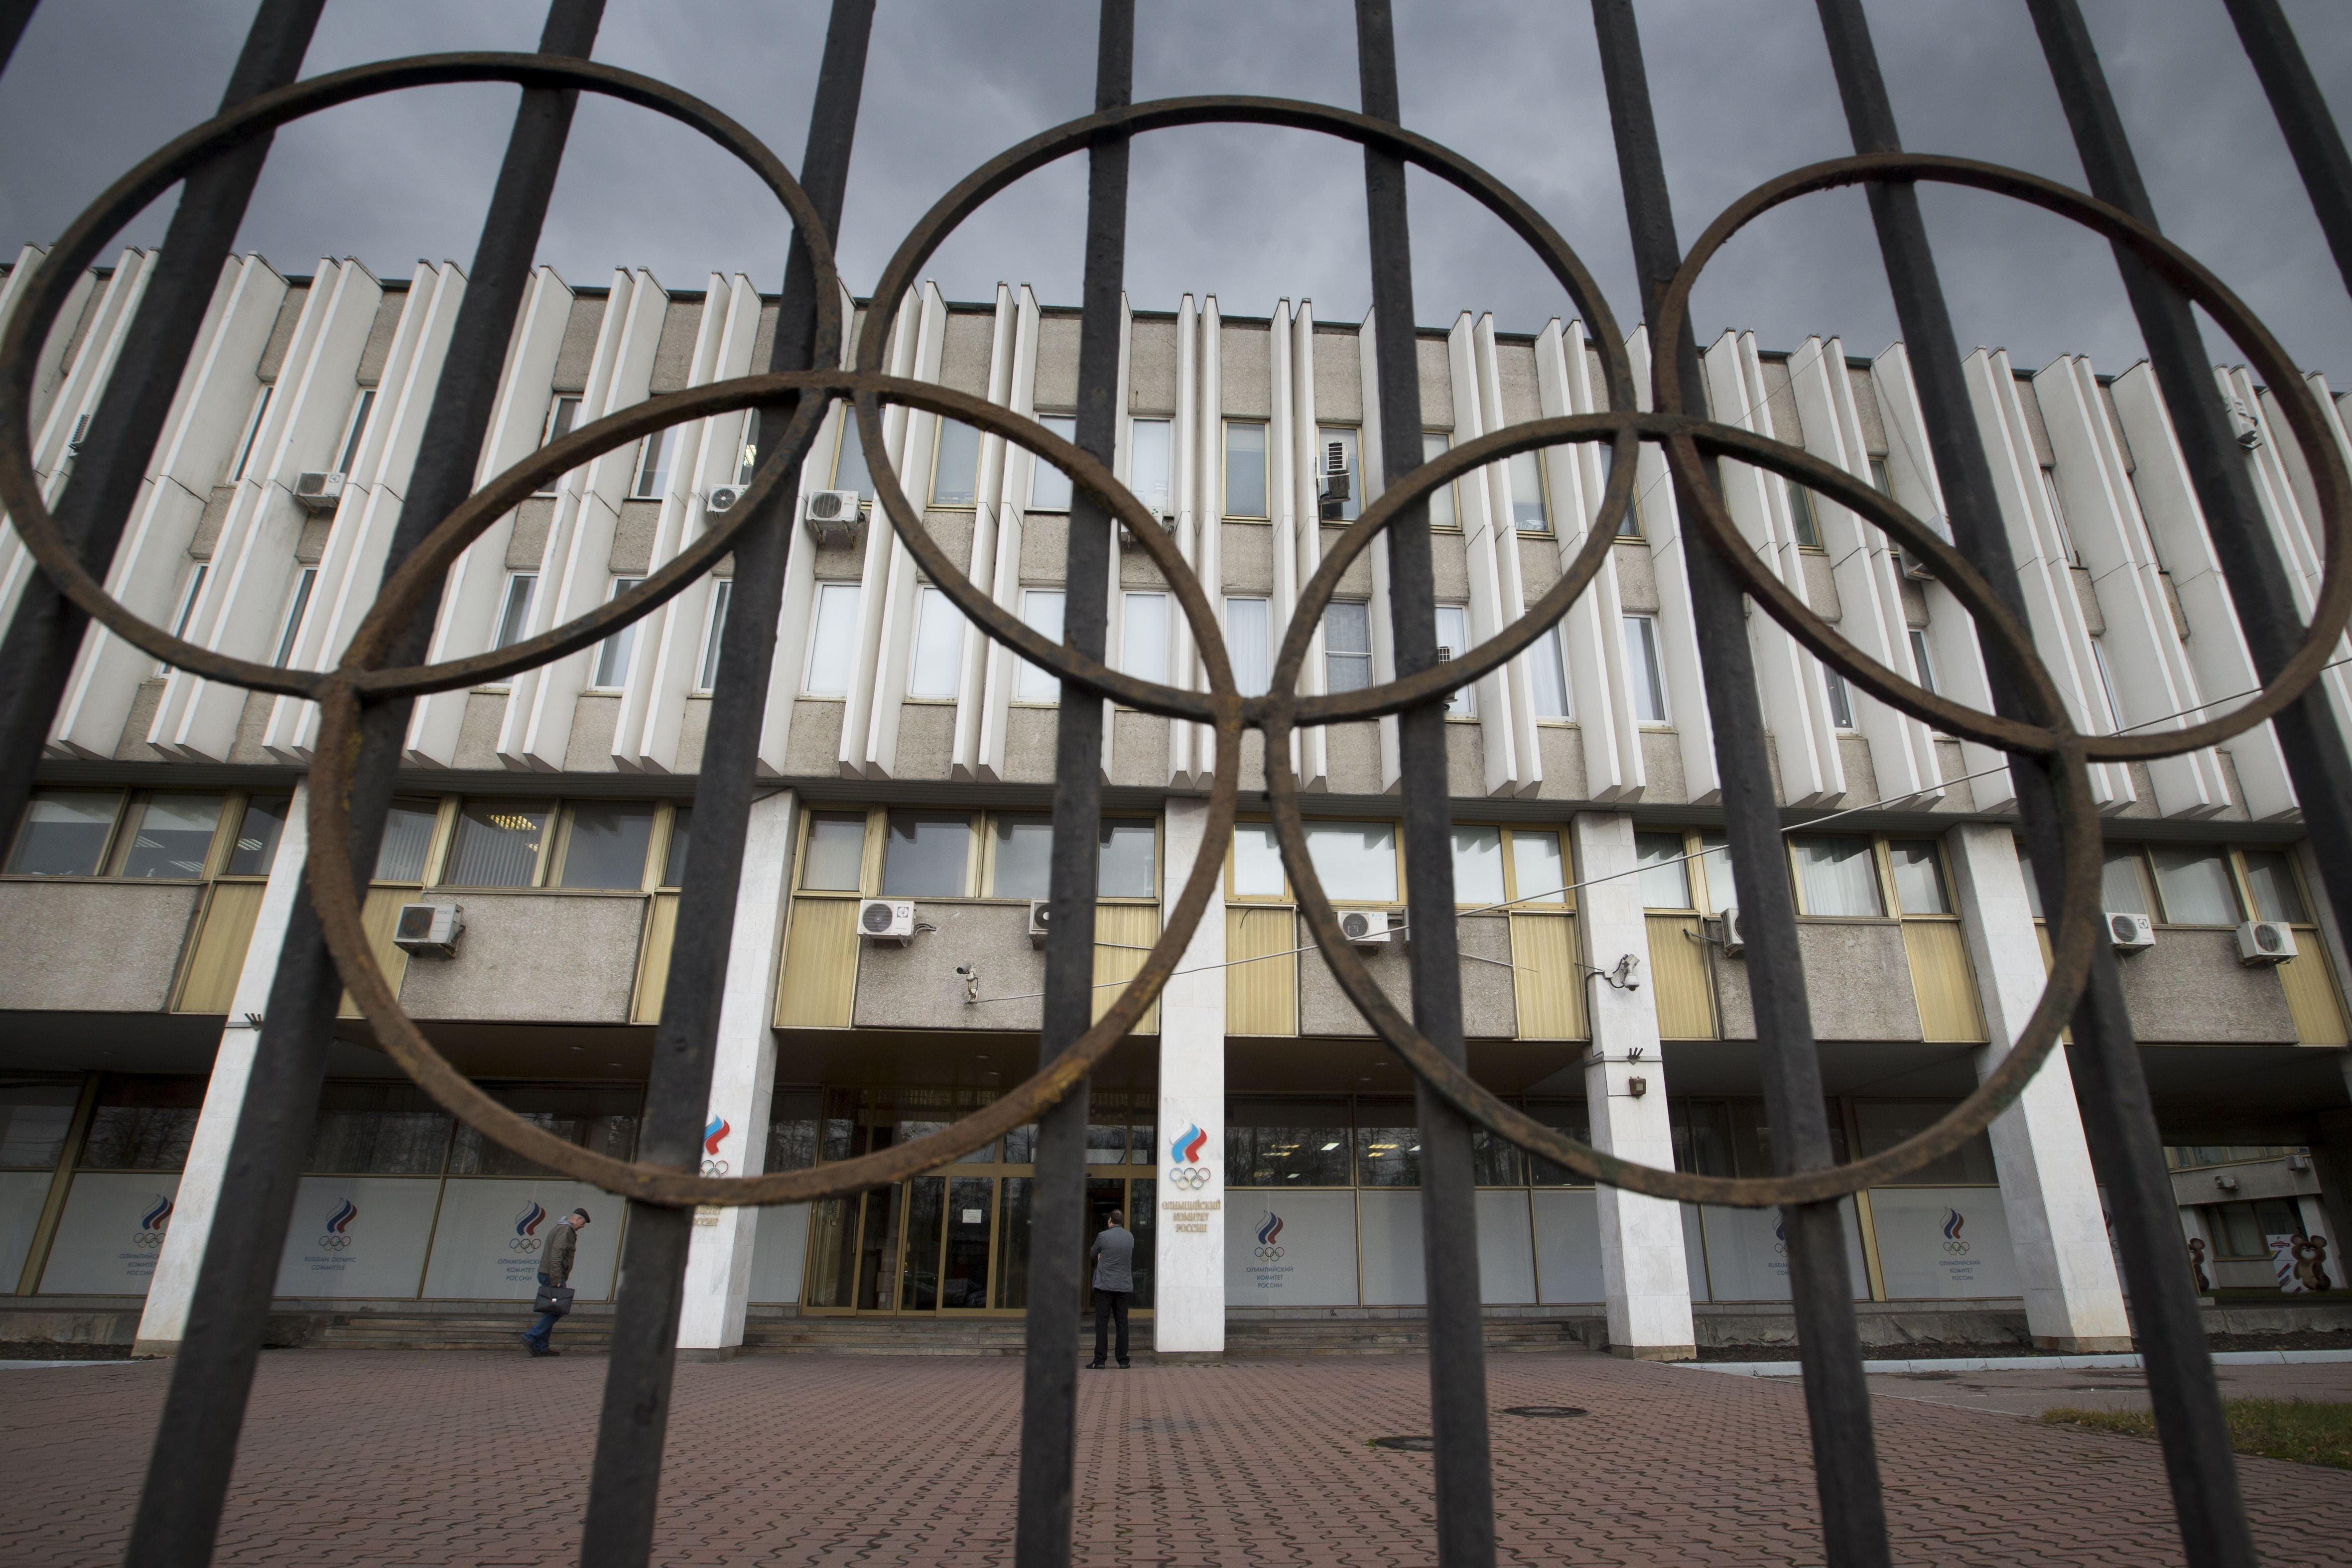 FILE - In this Nov. 13, 2015, file photo people walk in front of the Russian Olympic Committee building in Moscow. On Monday, July 18, 2016 WADA investigator Richard McLaren confirmed claims of state-run doping in Russia. (AP Photo/Pavel Golovkin, File)